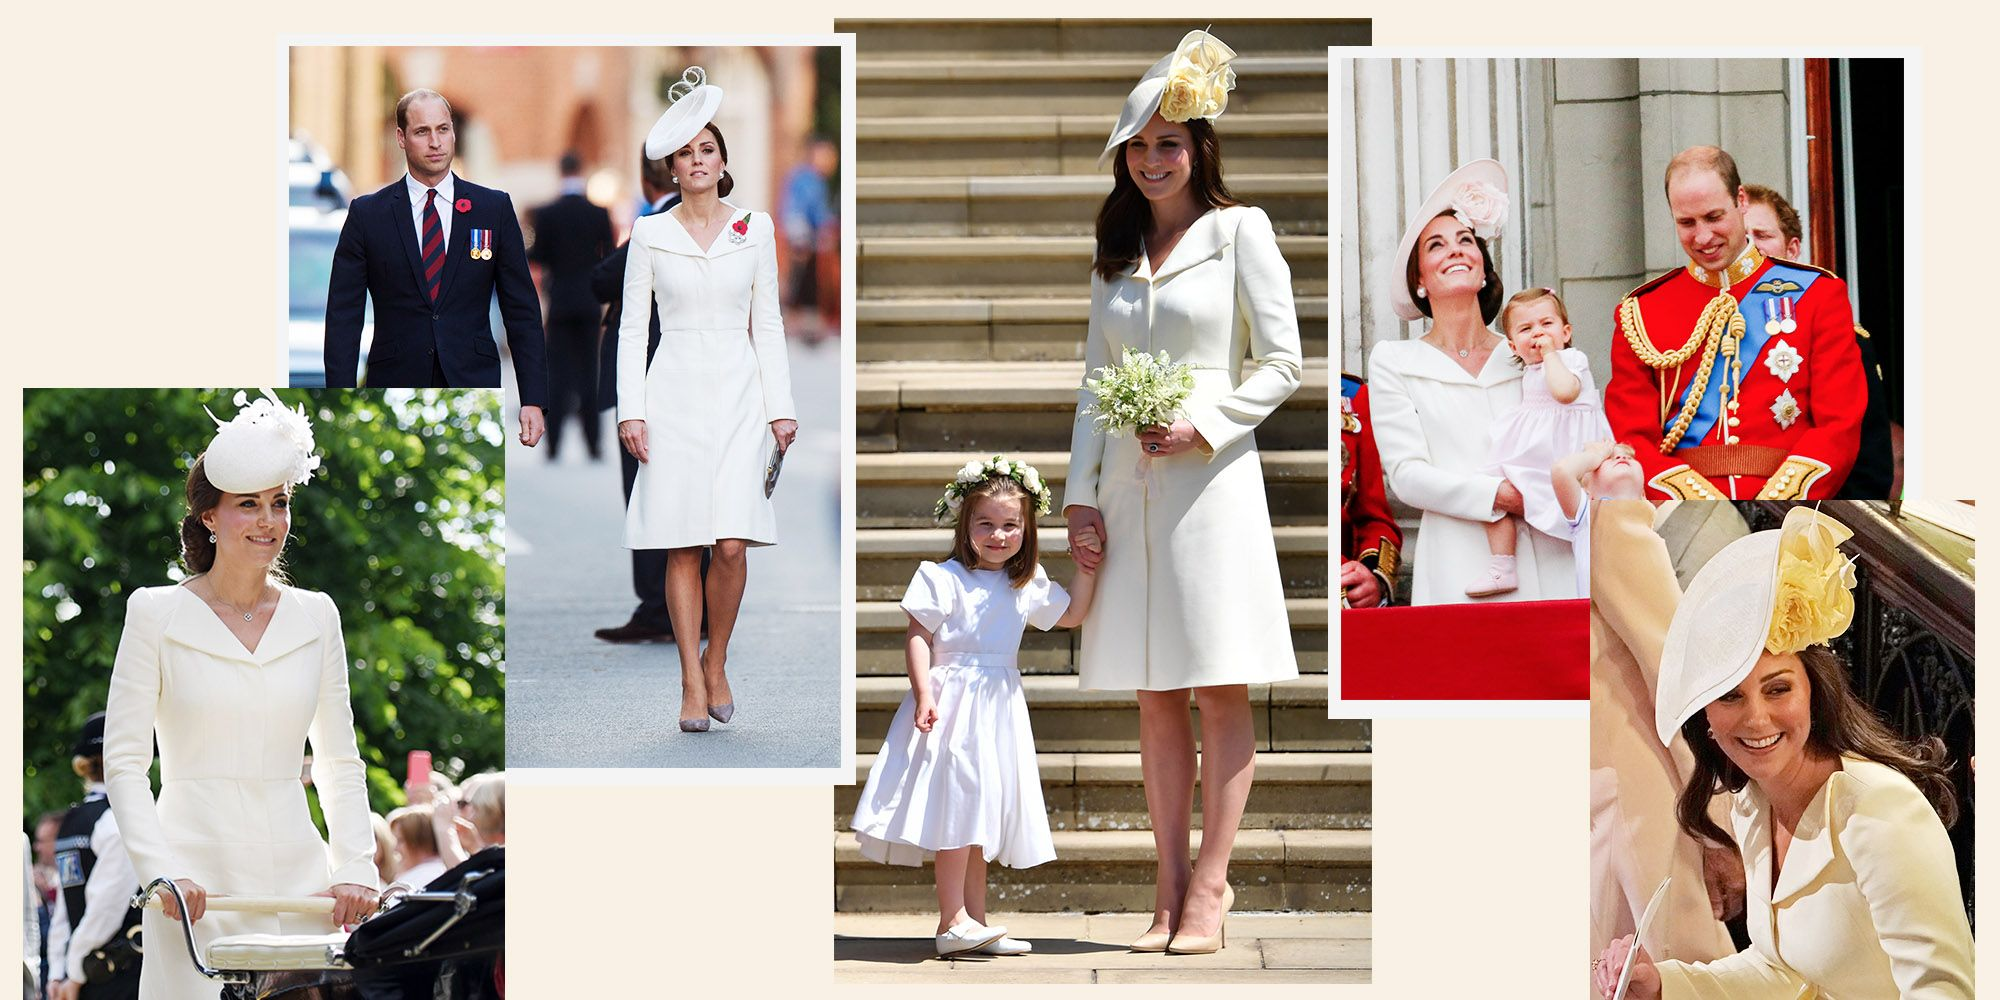 2ccd791aadf Why Kate Middleton Wore White to the Royal Wedding - In Defense of ...